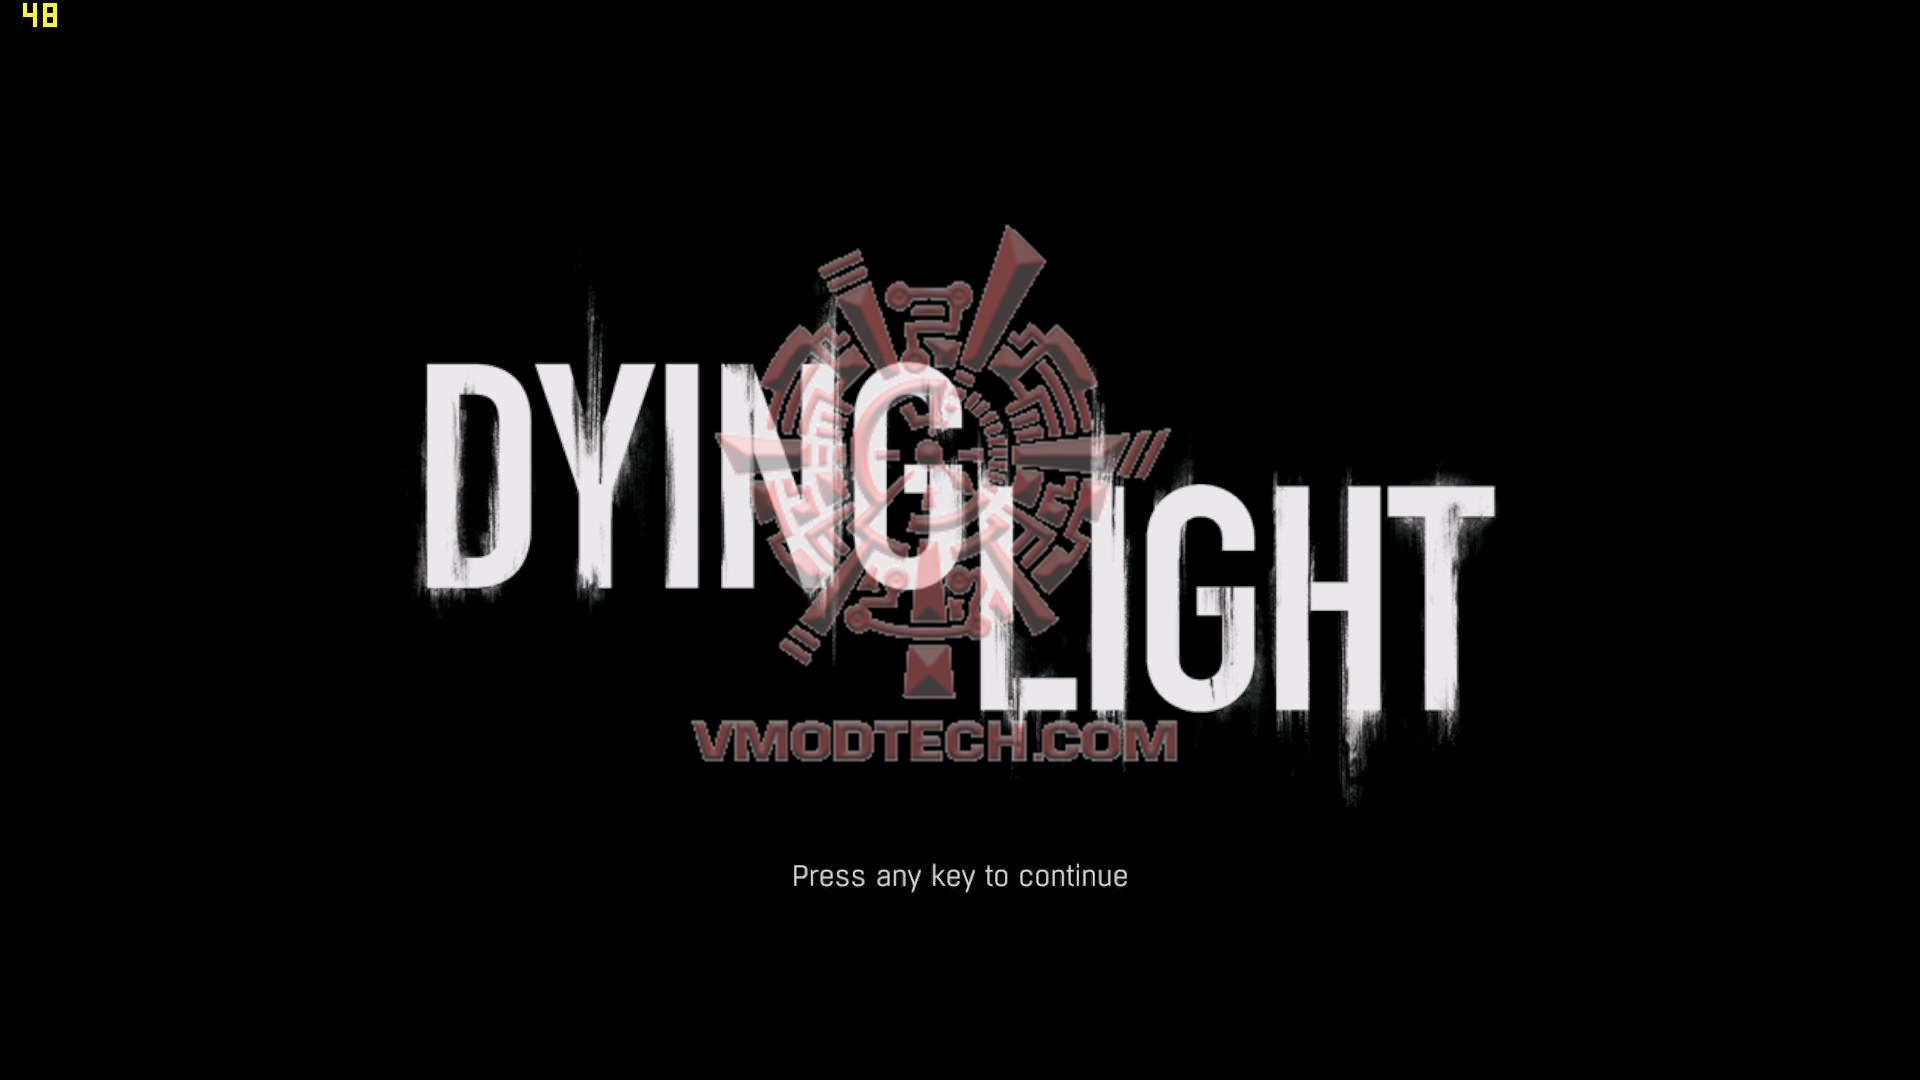 dyinglightgame 2015 02 19 22 32 56 15 GIGABYTE Radeon RX 460 OC Edition 2GB GDDR5 Review